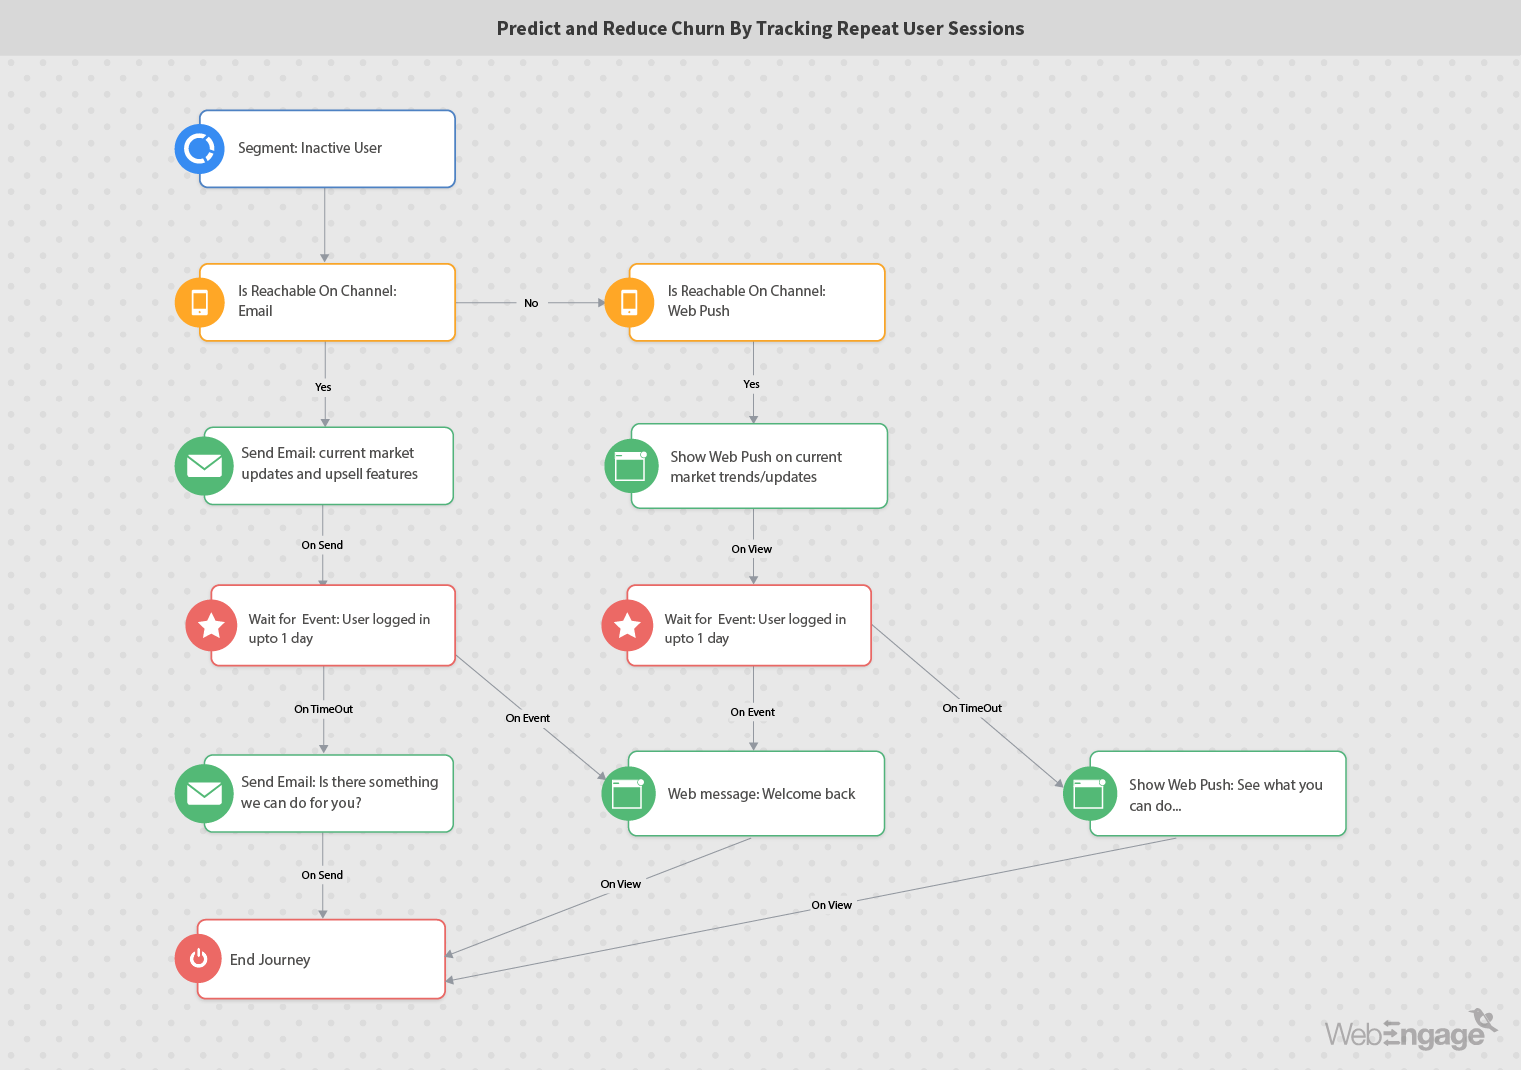 Marketing automation workflow for predicting and reducing user churn